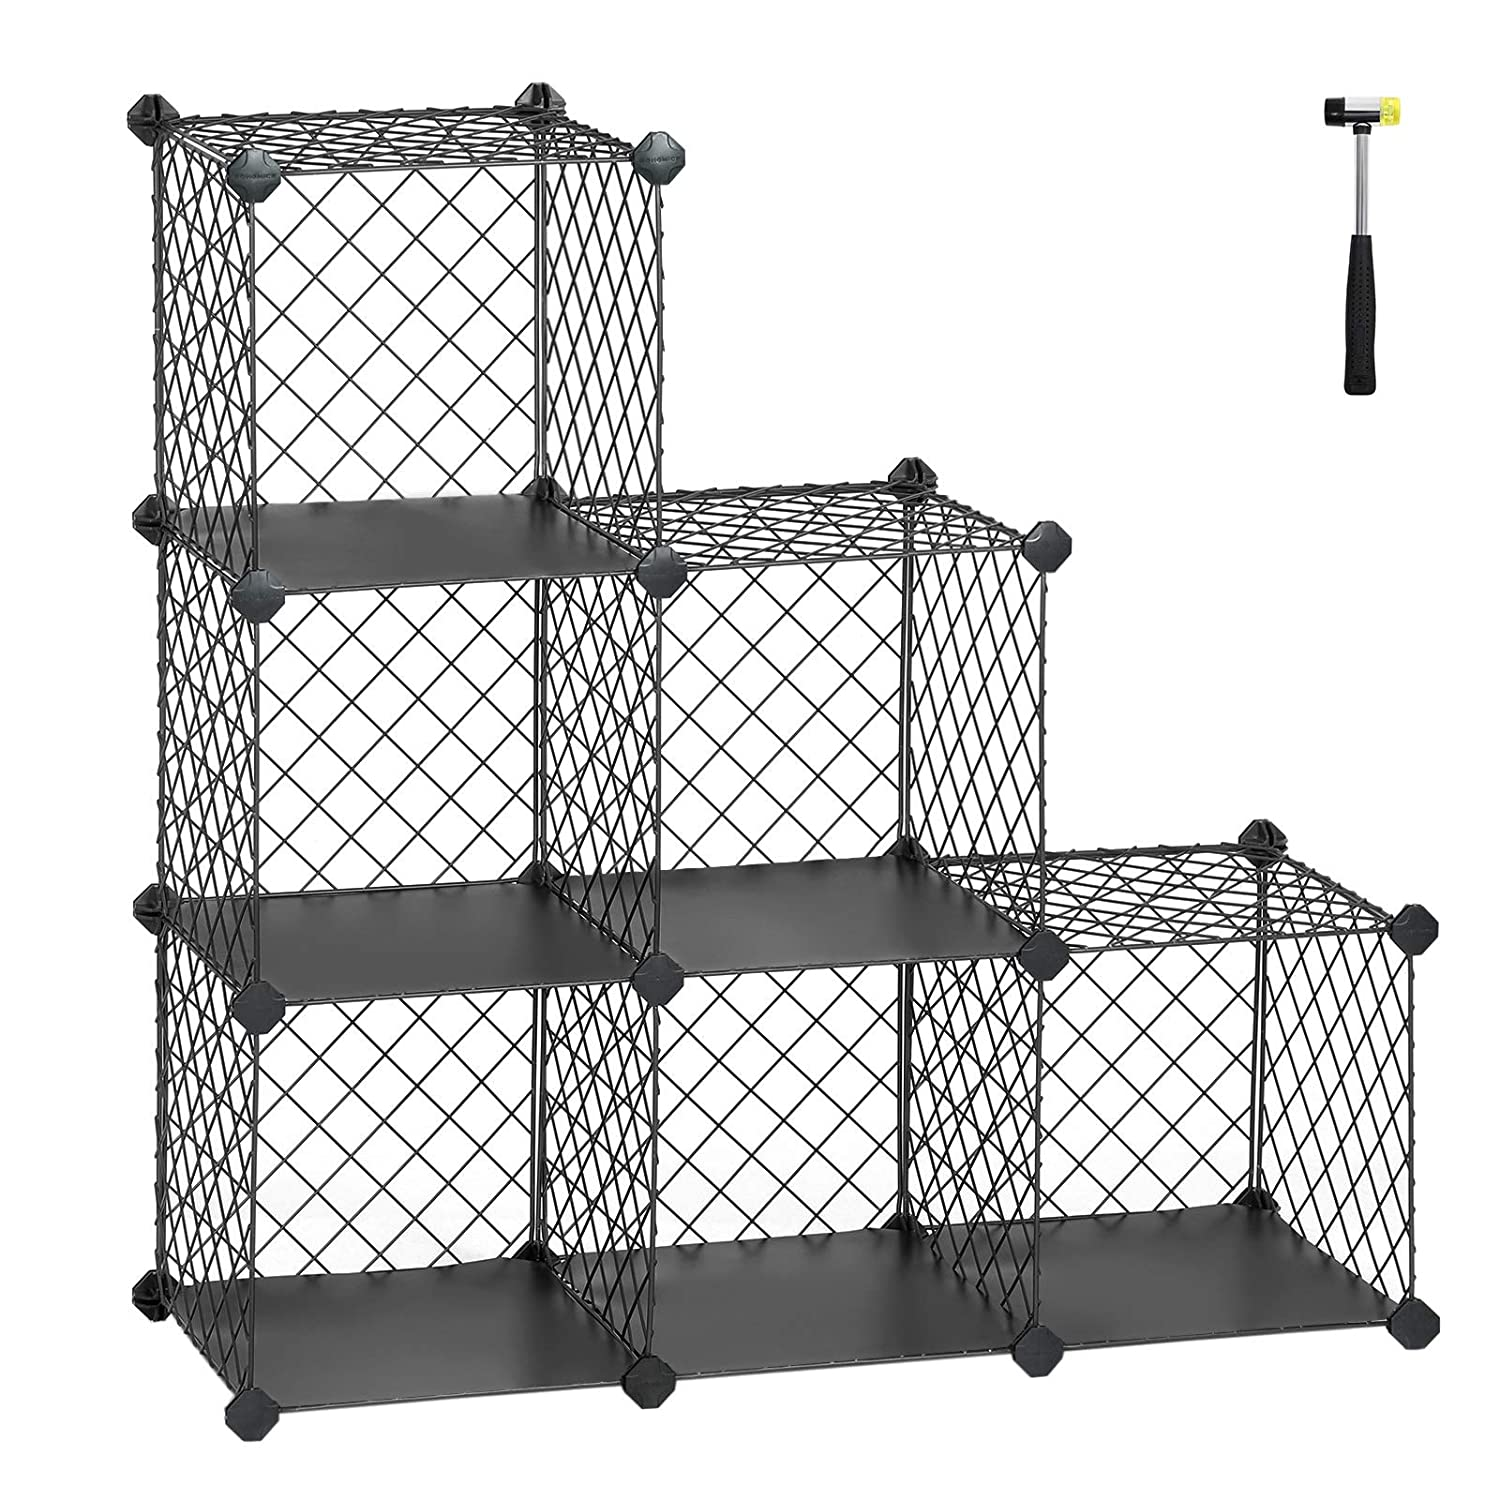 fba42d565318 SONGMICS Interlocking Storage Rack, Metal Wire Mesh Cube Shelf, 6 Cube for  Books, Shoes, Clothes, Ideal for Garage, Cellar, Office, Wardrobe, Stable,  ...